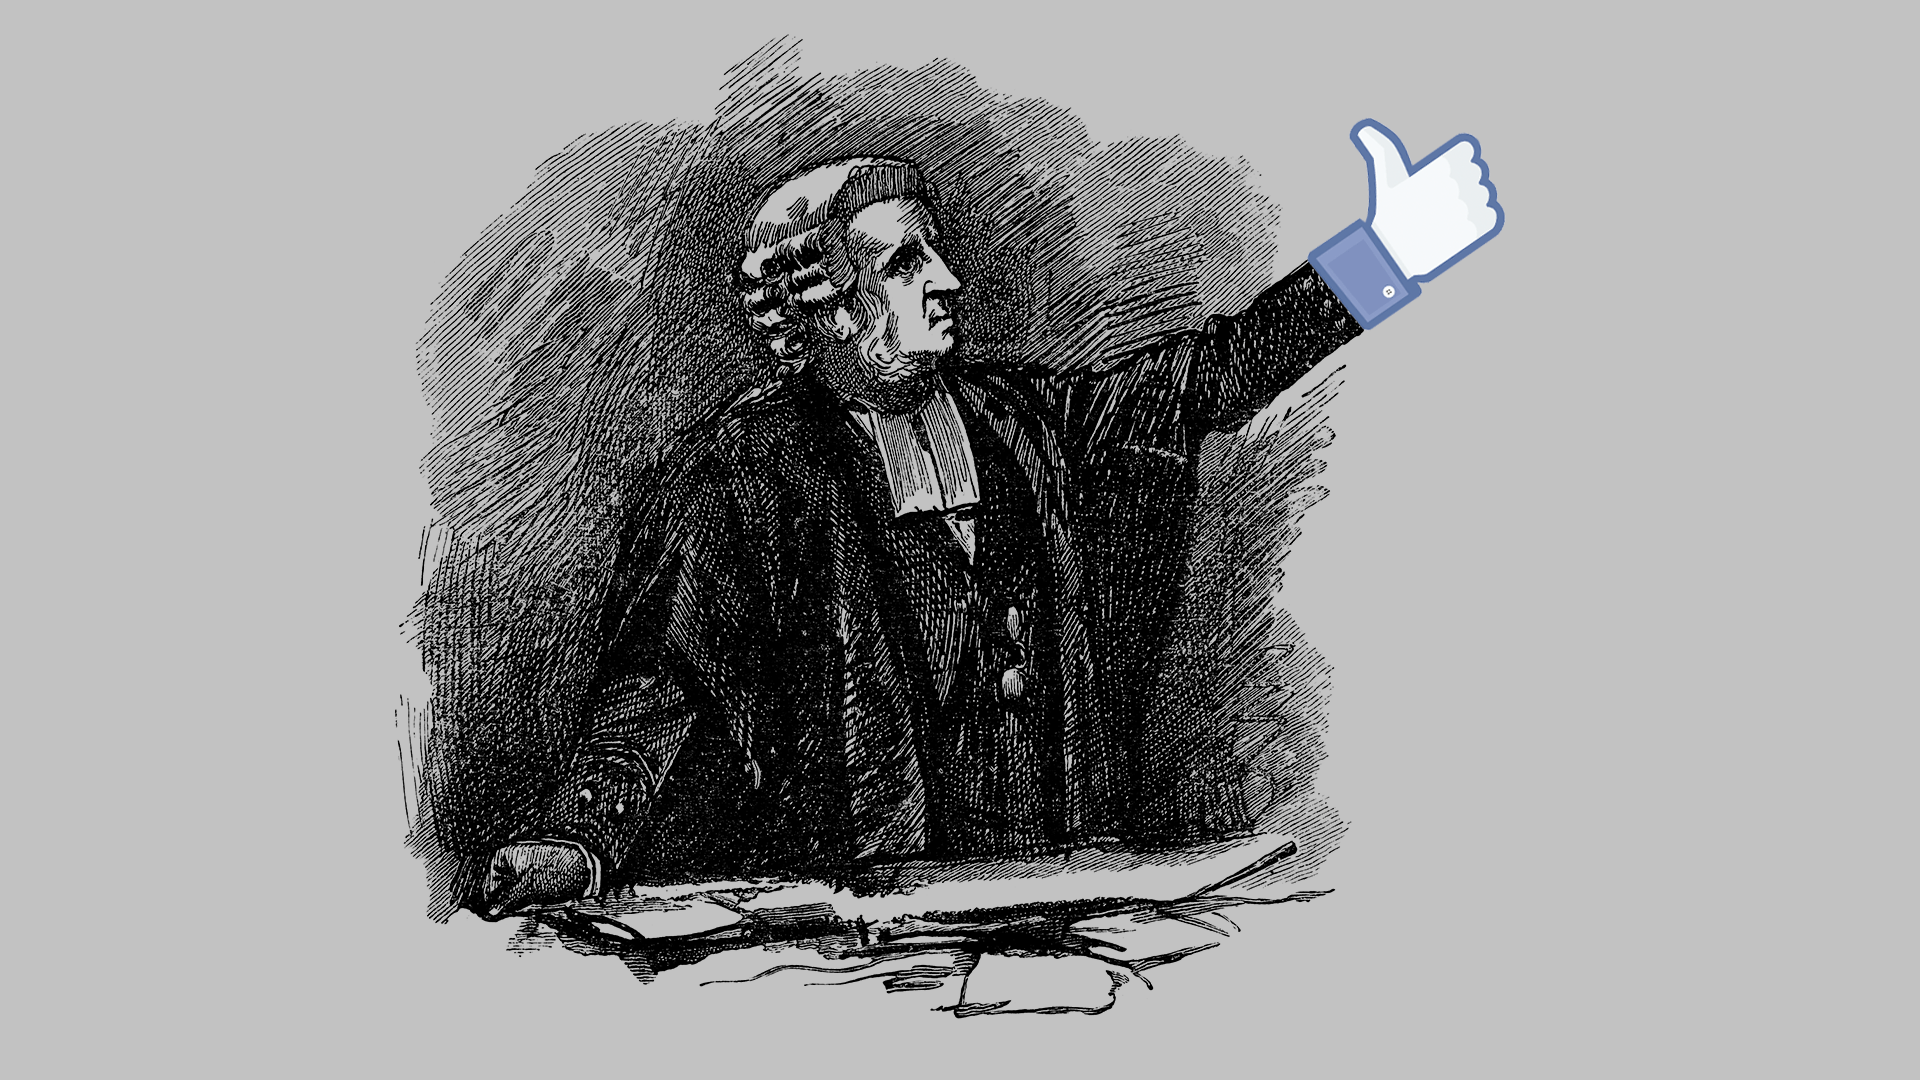 A black and white illustration of a founding father with a Facebook thumbs up icon as a hand